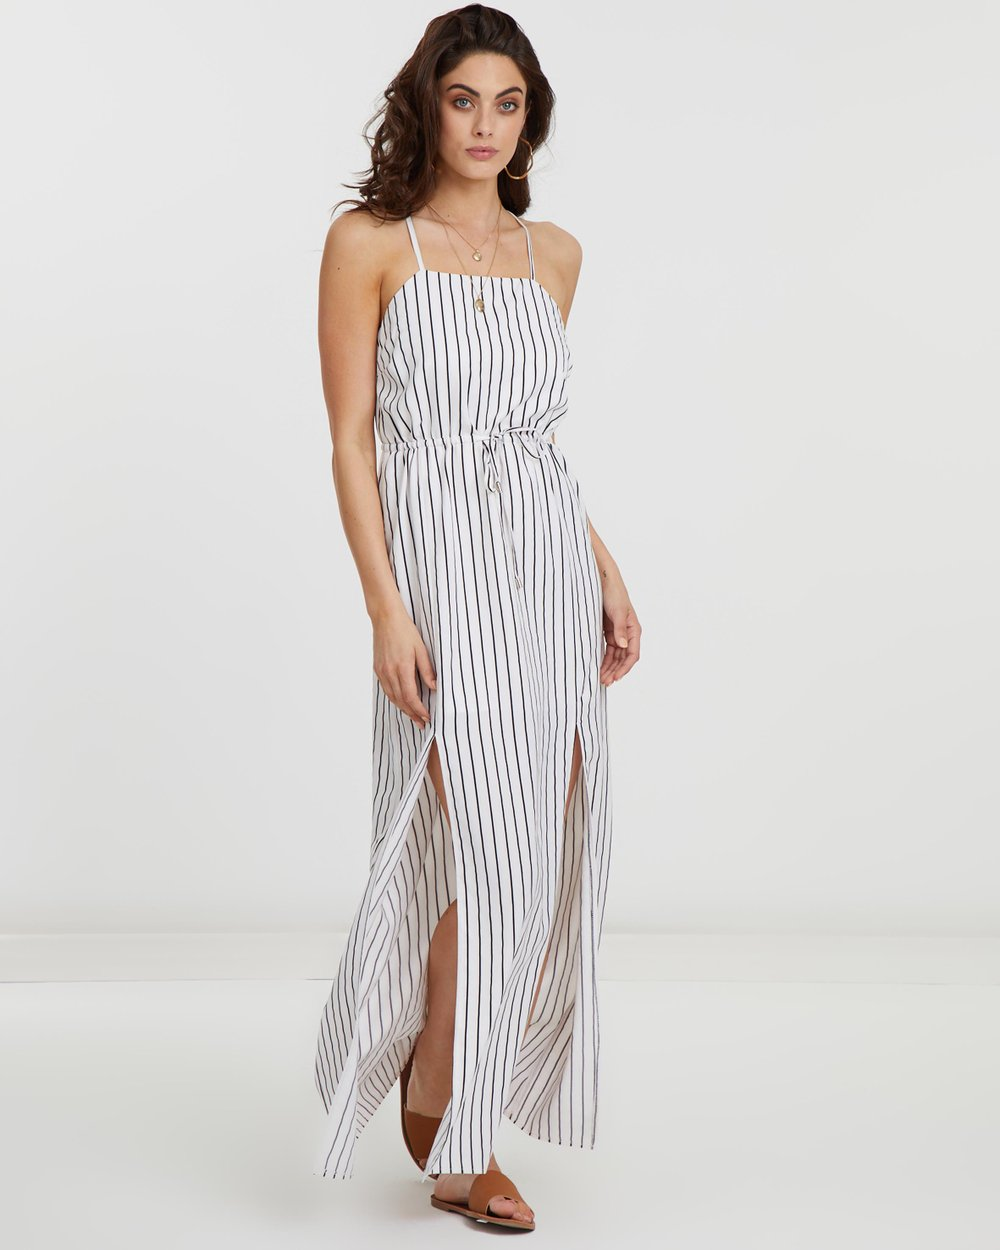 8392283de413 ICONIC EXCLUSIVE - Selina Stripe Maxi Dress by Atmos Here Online ...